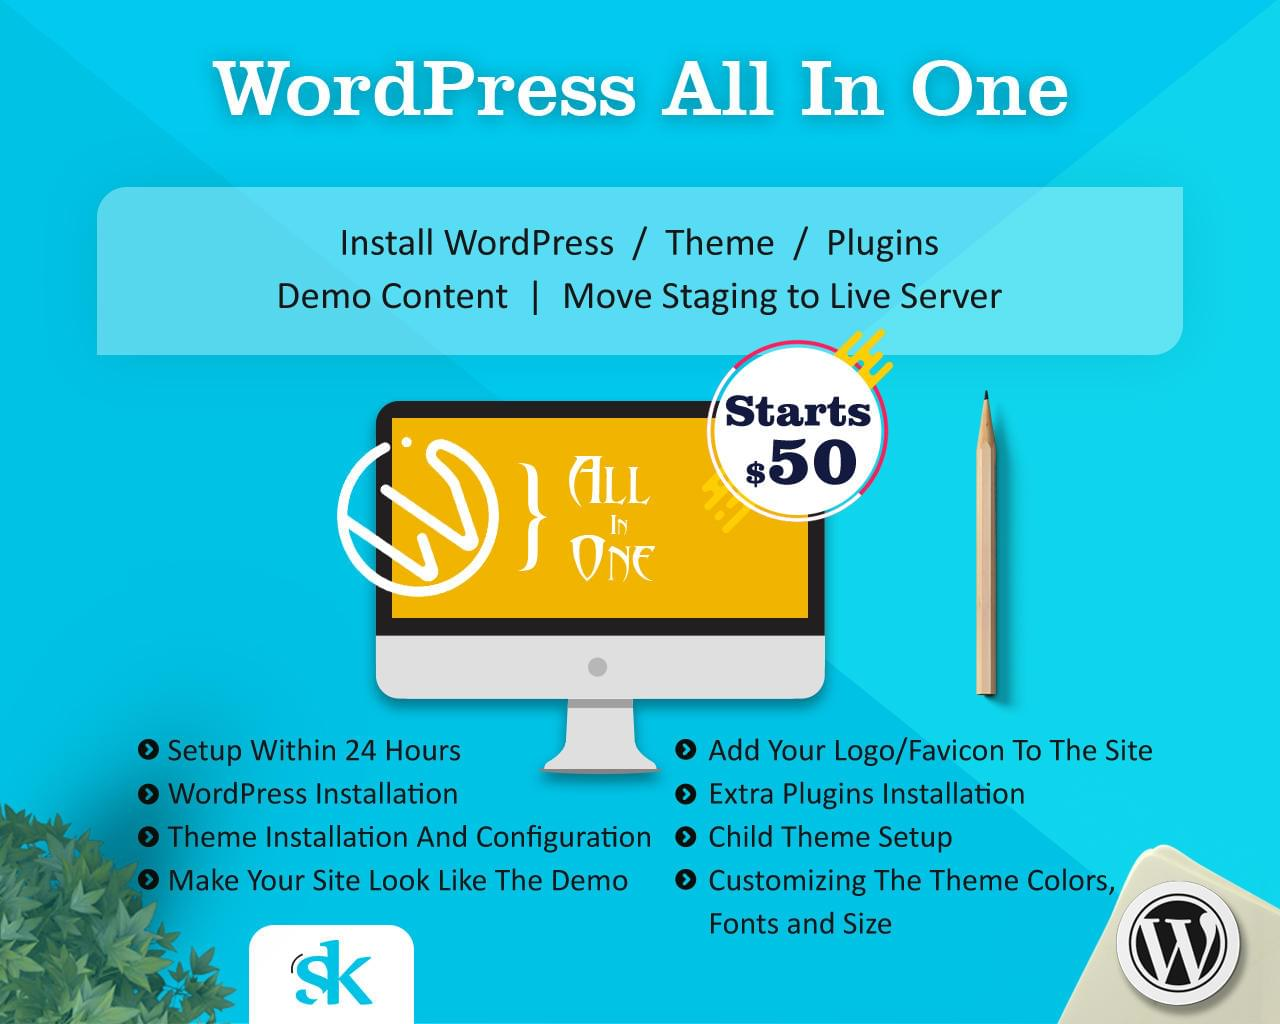 WordPress All In One (Install WordPress/Theme/Plugins + Demo Content + Move Staging to Live Server) by SK-Web-Solutions - 112977